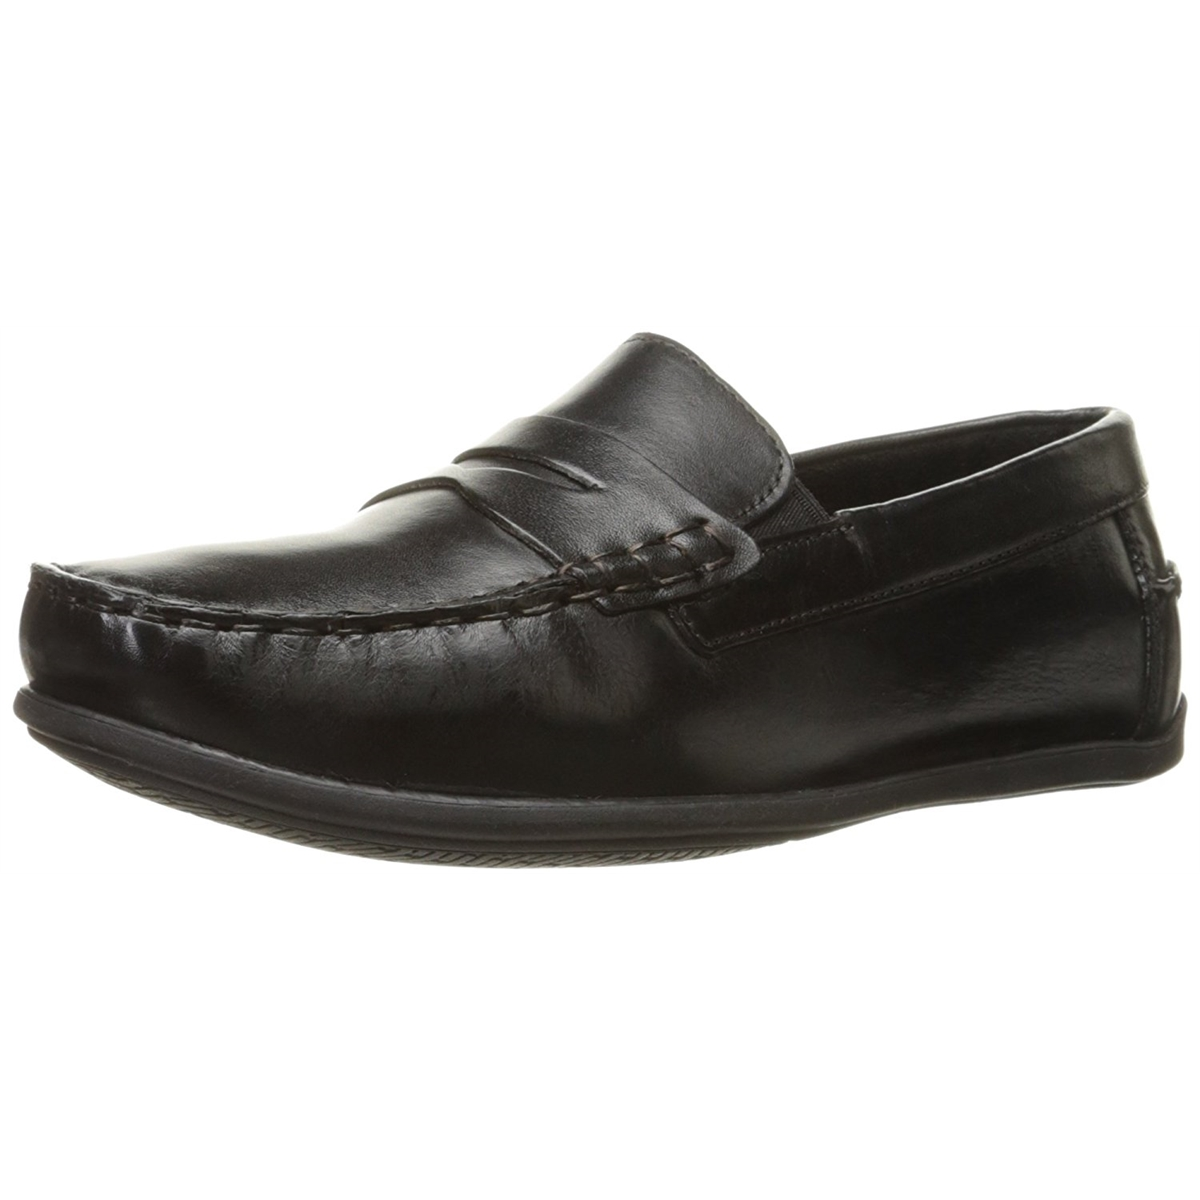 Florsheim B Jasper Driver Slip On Shoes by Florsheim